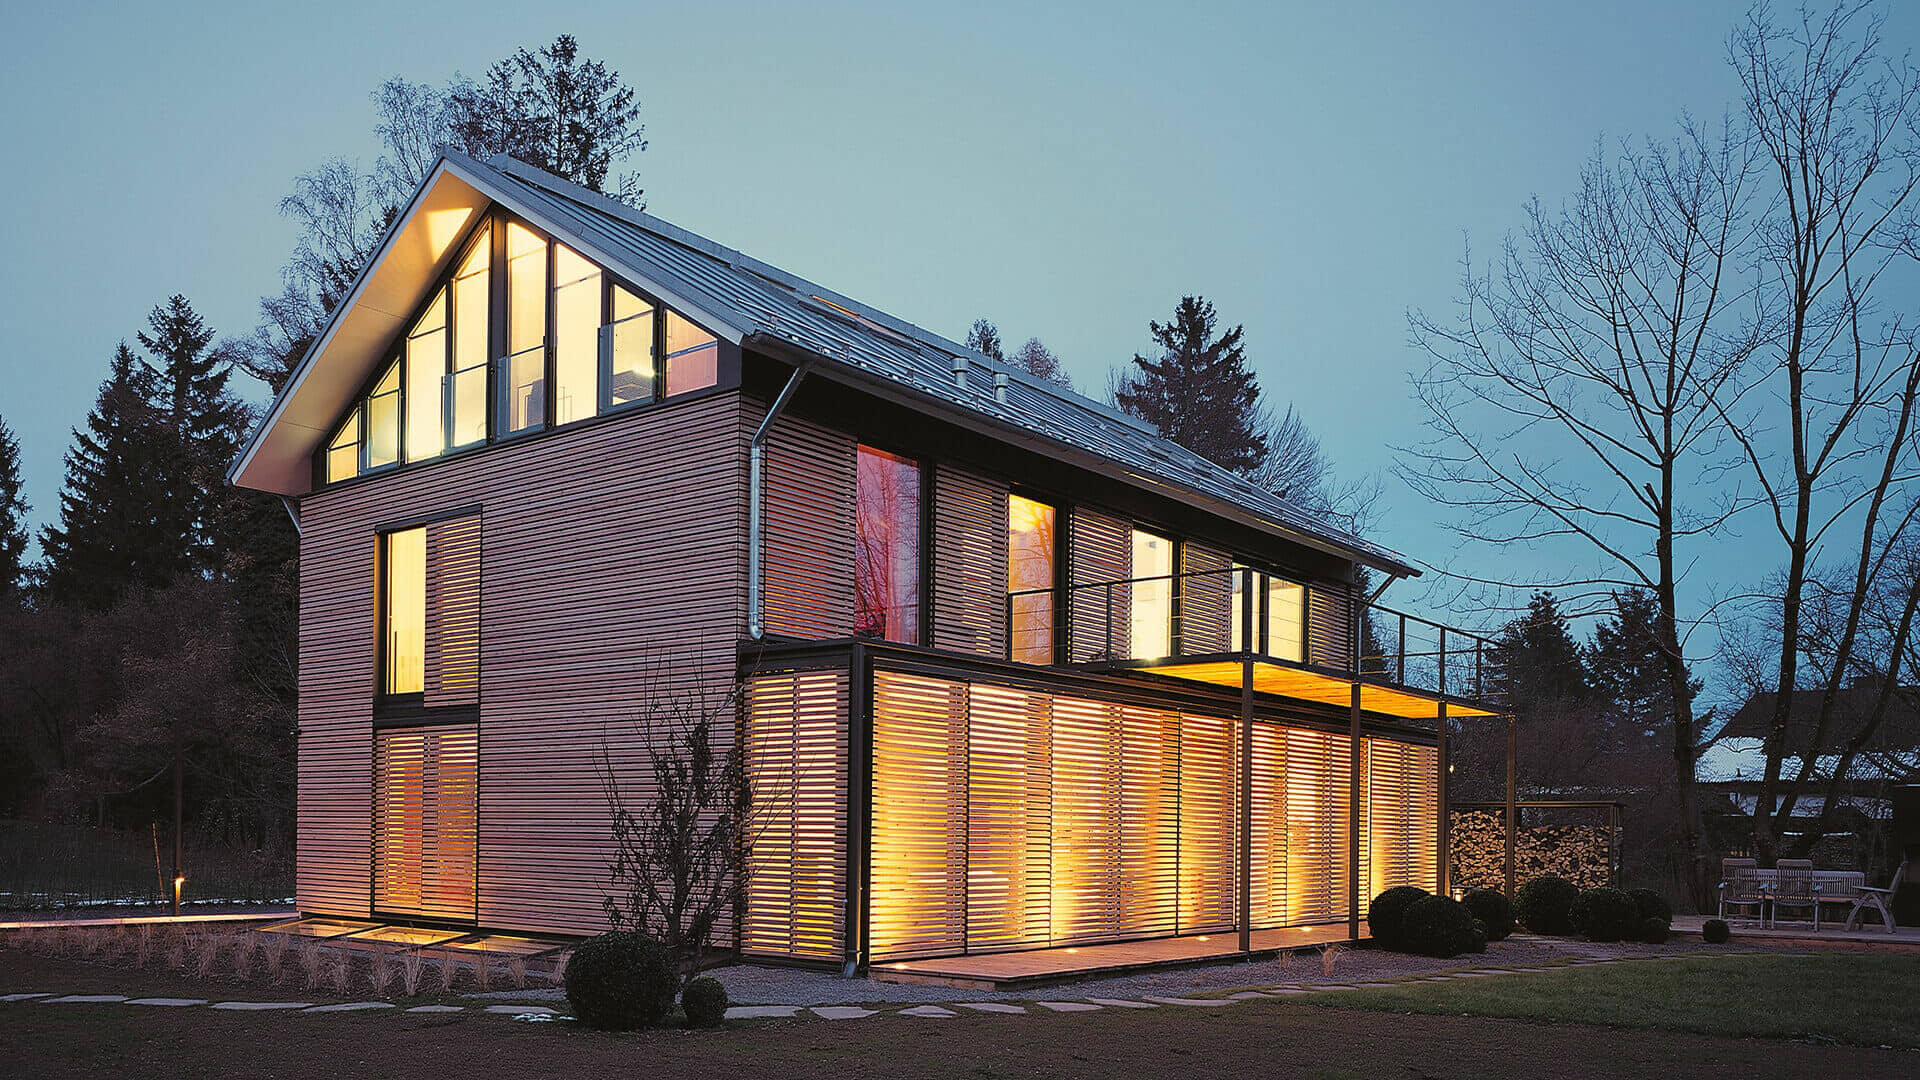 Architektur & Innenarchitektur: Wohnhaus J. Home